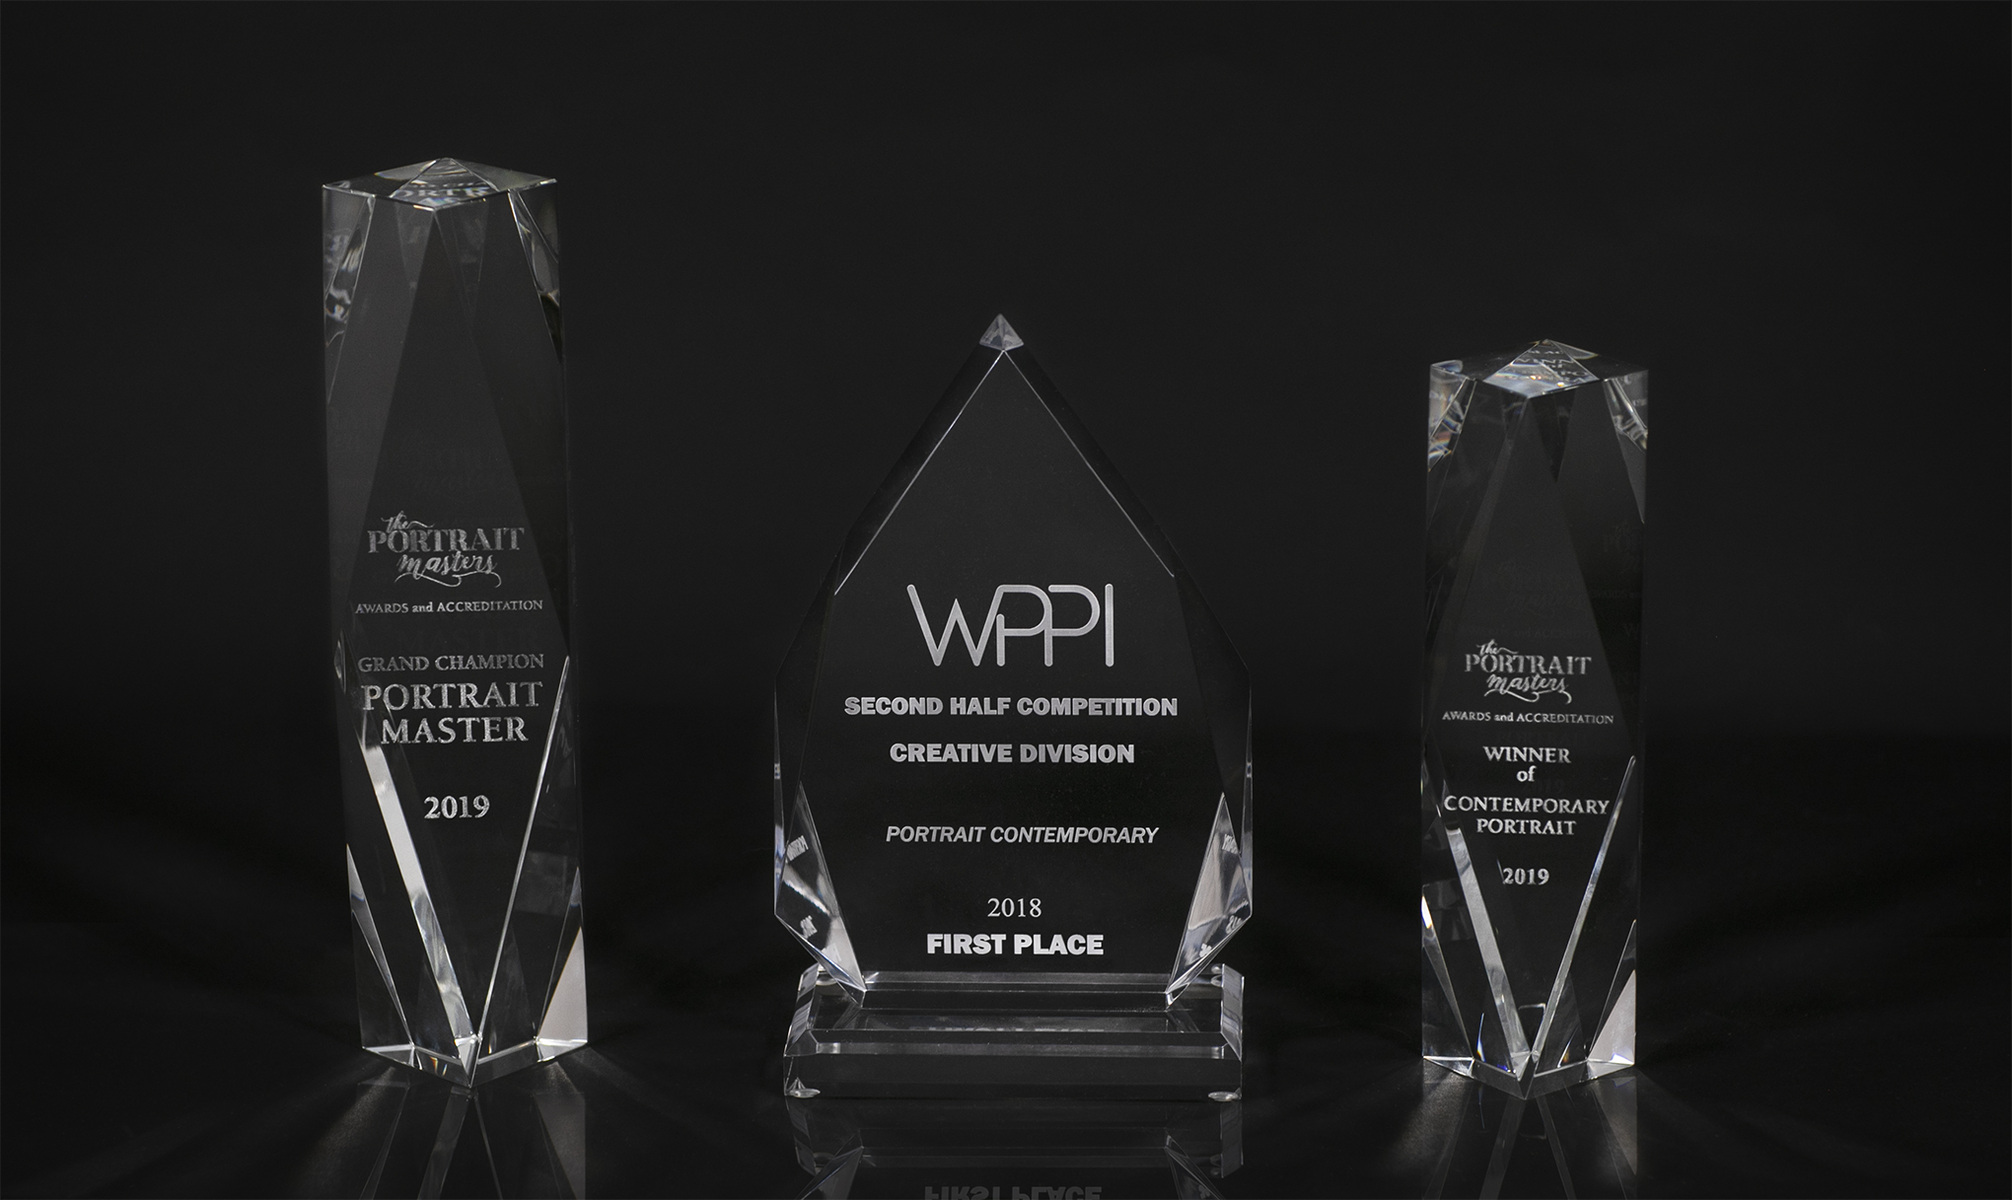 Dai Bui Photography - First Place in Contemporary Portrait & Grand Champion 2019 in The Portrait Masters; First Place 2018 in Contemporary Portrait @ WPPI